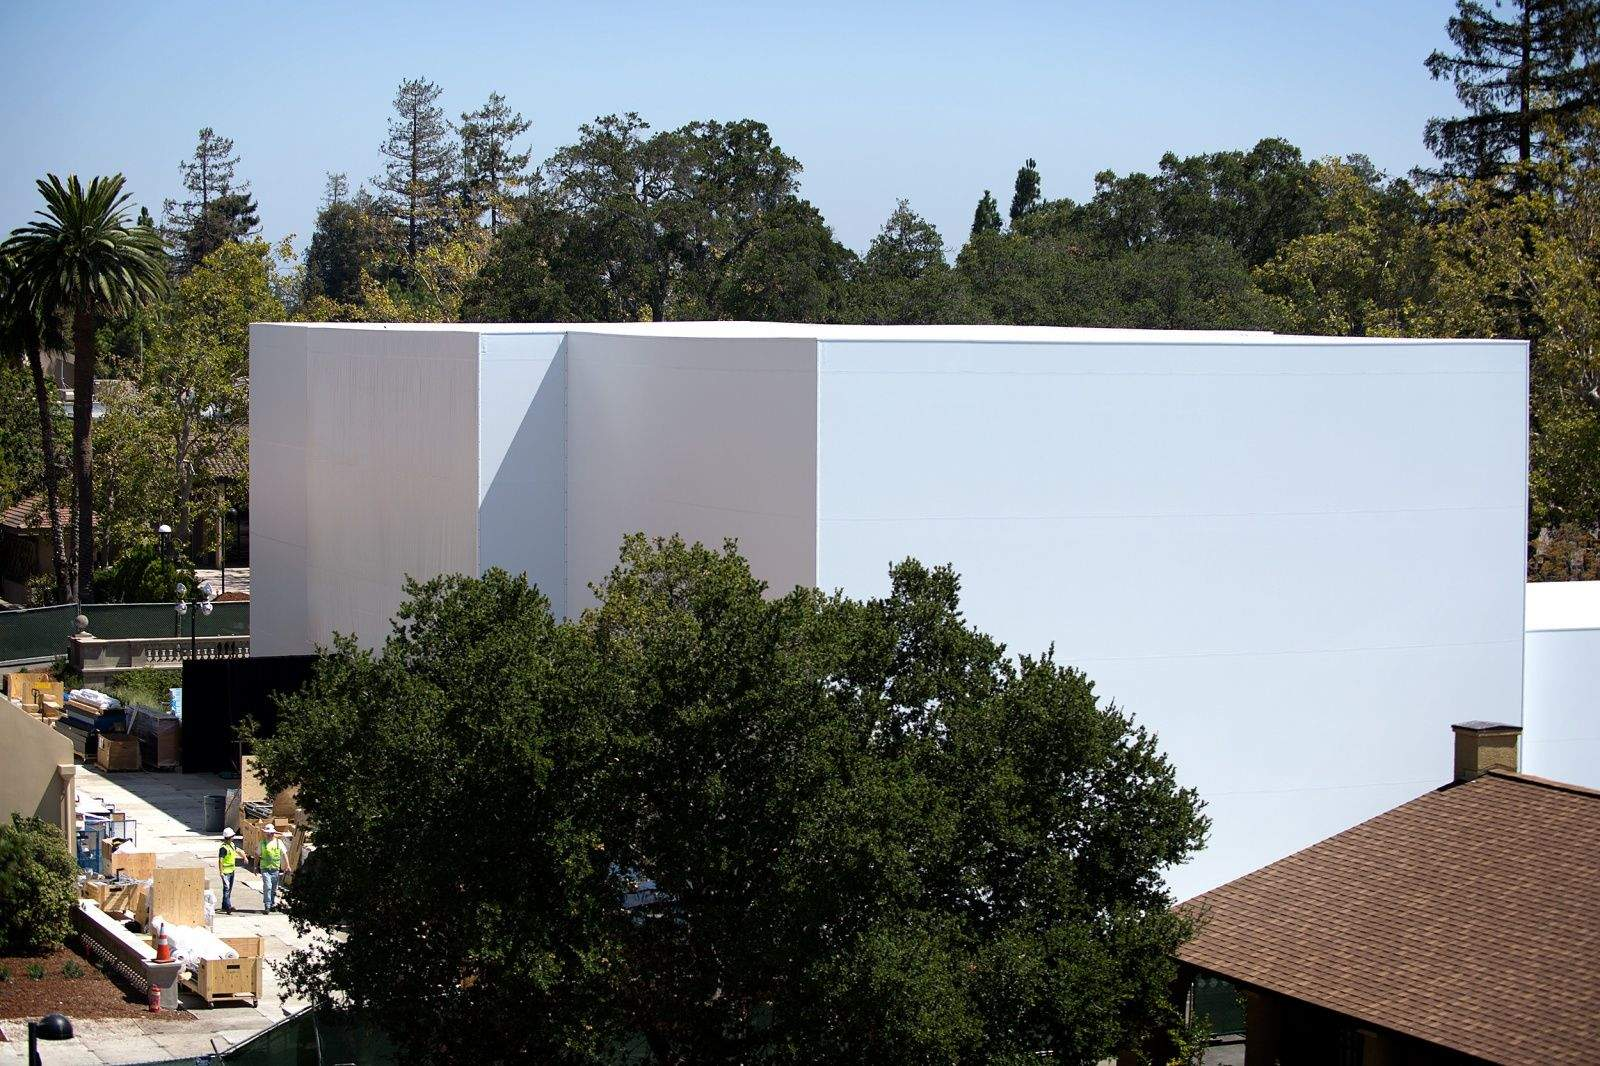 CUPERTINO, California -- What's inside the mystery building Apple is fabricating for its big September 9 event? The giant construction project is almost as big of an enigma as what the iWatch will actually look like or do.   The boxy structure, which sprang up behind the Flint Center for the Performing Arts here on the De Anza College campus, looks like a cross between an igloo and a winning confection on Cake Wars.  Naturally, the enormous two-to-three story building sparked intense curiosity among the Apple faithful when pictures emerged Thursday, so we had to go take a look for ourselves.   Will it hold something as mundane as a demo area where tech journalists can fondle Apple's latest, greatest gear? Does it contain a full-size home of the future to show off amazing HomeKit implementations? Will it house a runway for an Apple wearables fashion show or a giant stage for a post-announcement Dr. Dre concert?   Whatever it holds, it is truly a massive undertaking. It's surrounded by green fences and countless security guards. We, like you, can't wait for Apple's big reveal — here's what we saw walking around the outskirts of the secretive project Thursday afternoon.